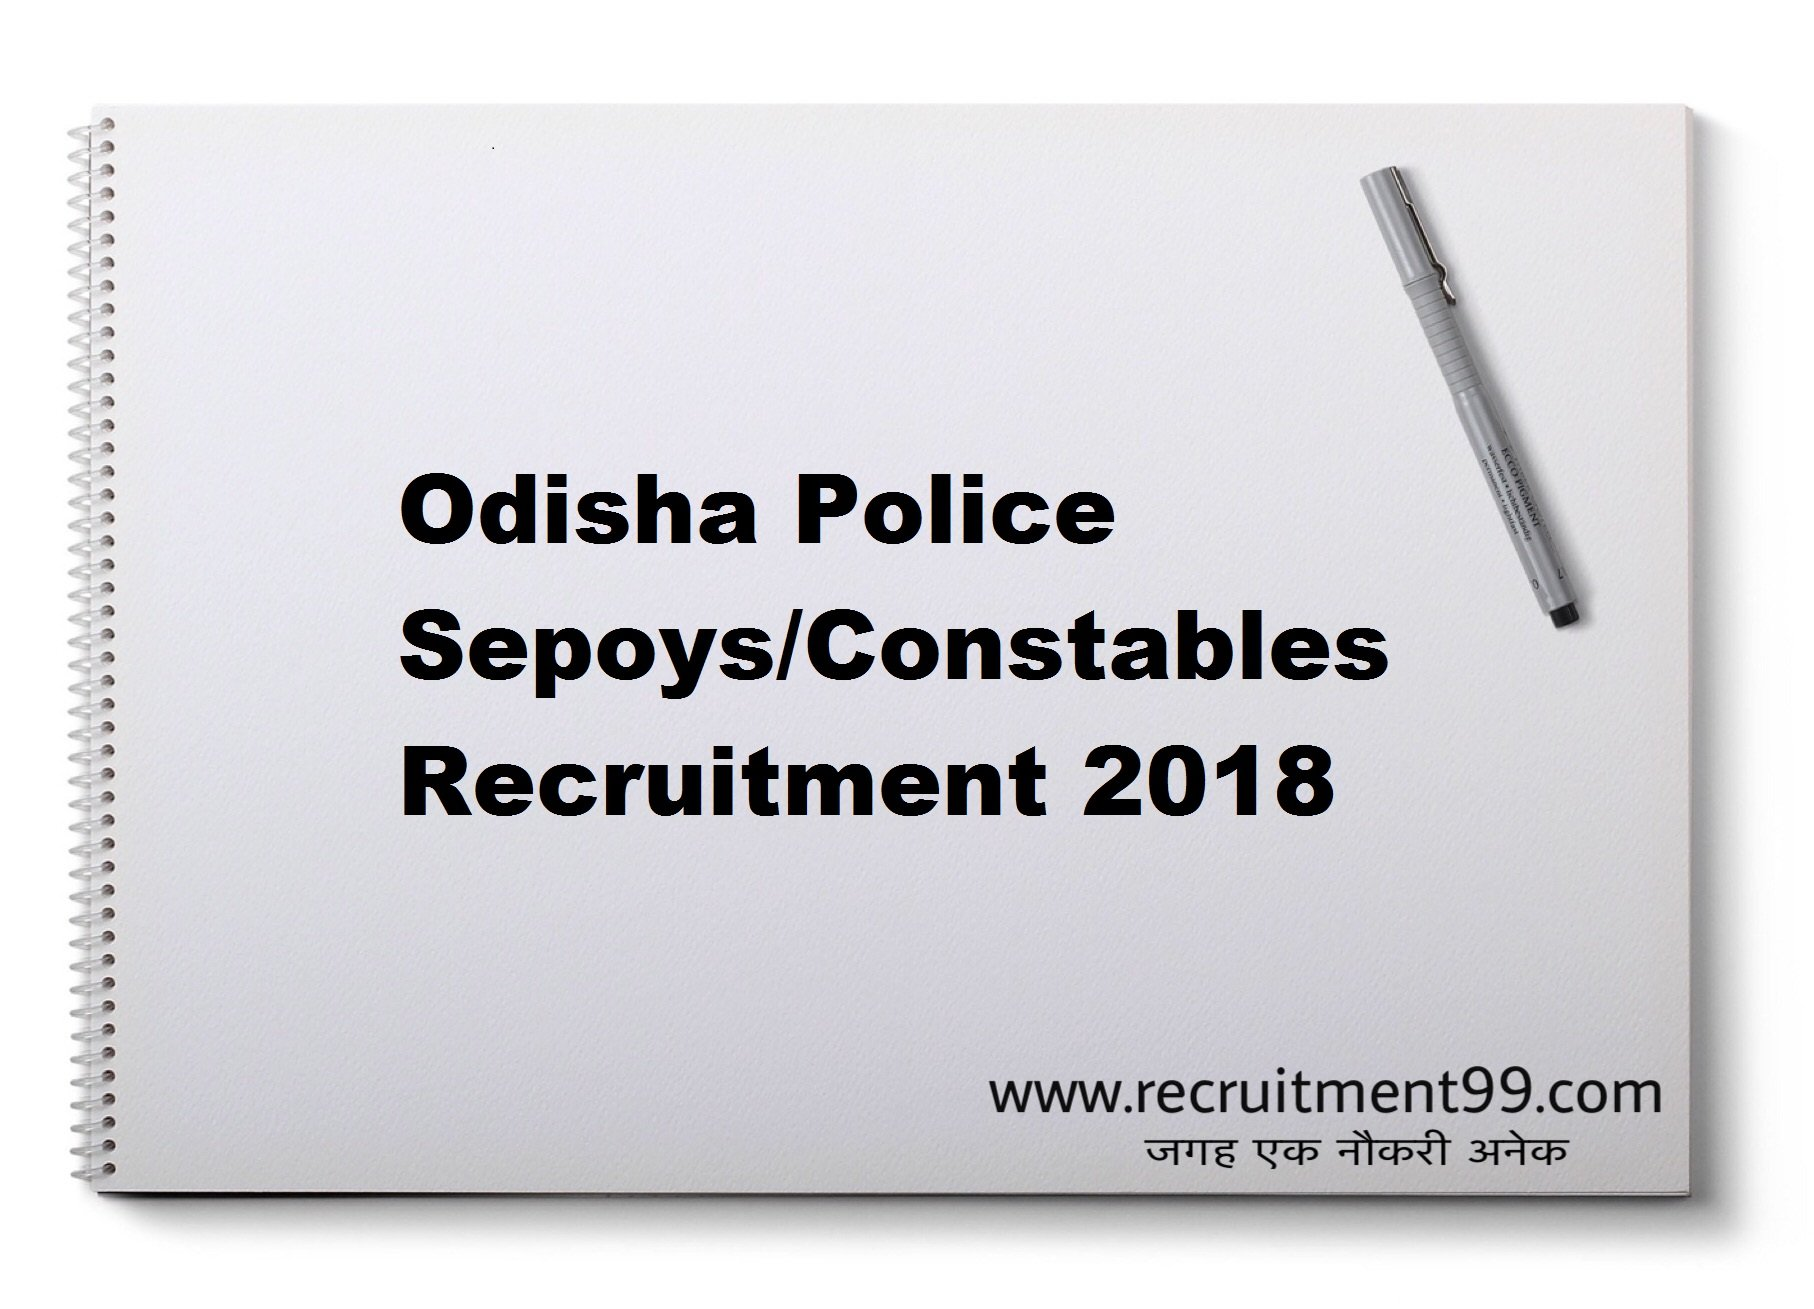 Odisha Police Sepoys/Constables Recruitment Hall Ticket Result 2018